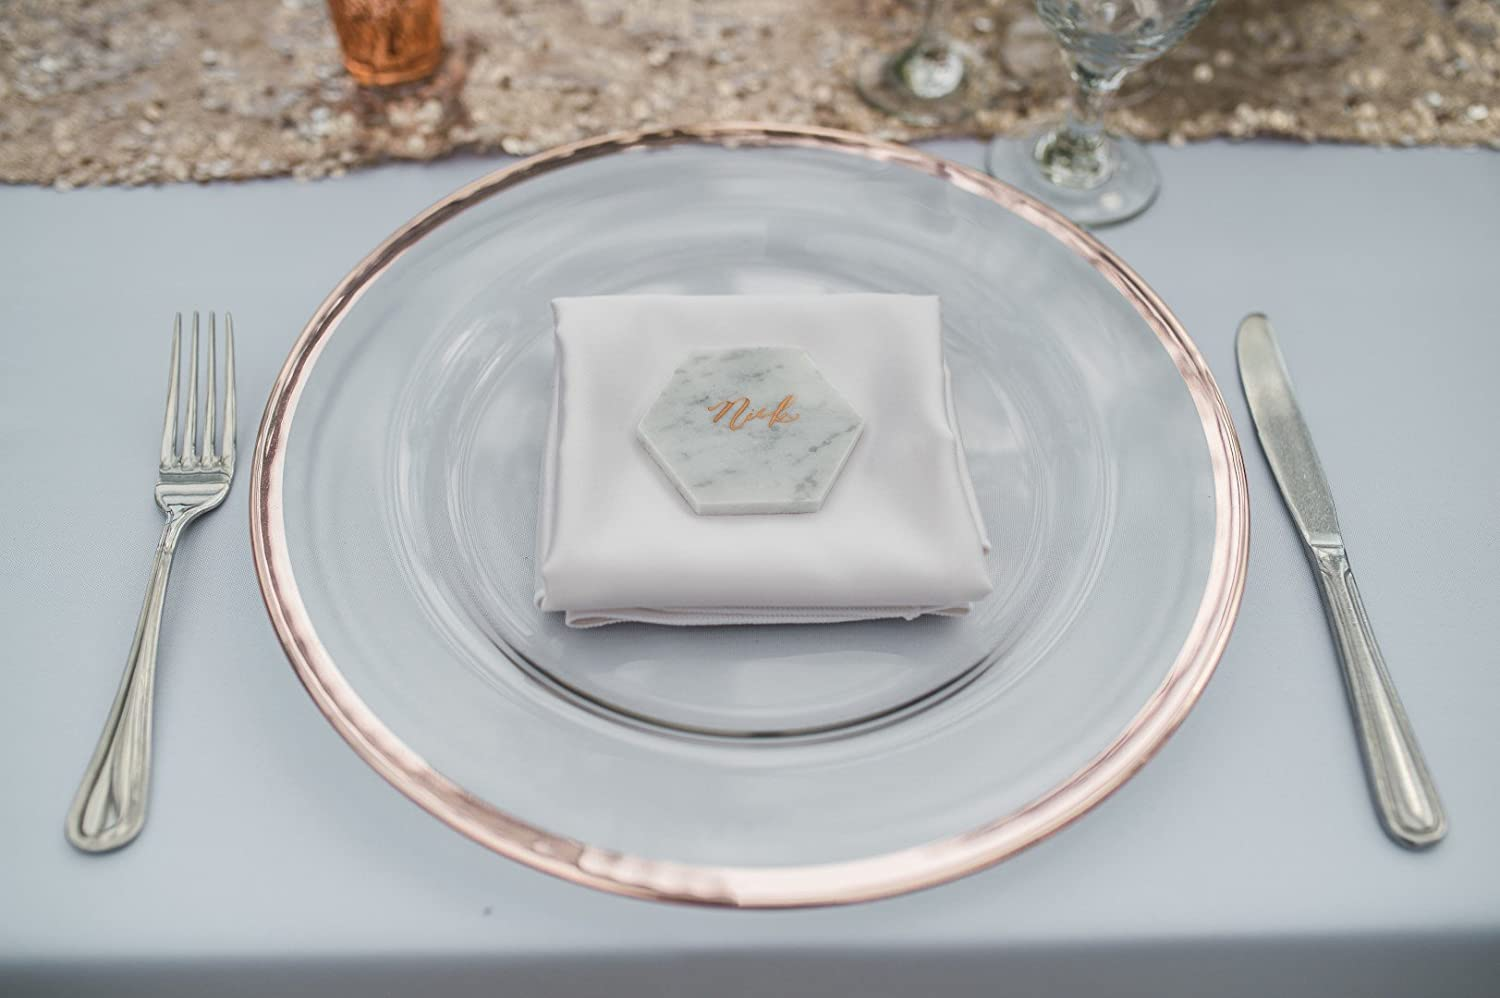 Set of 4 Clear Glass Charger 13 Inch Dinner Plate With Metallic Rim Gold Ms Lovely C120-25-1-gold